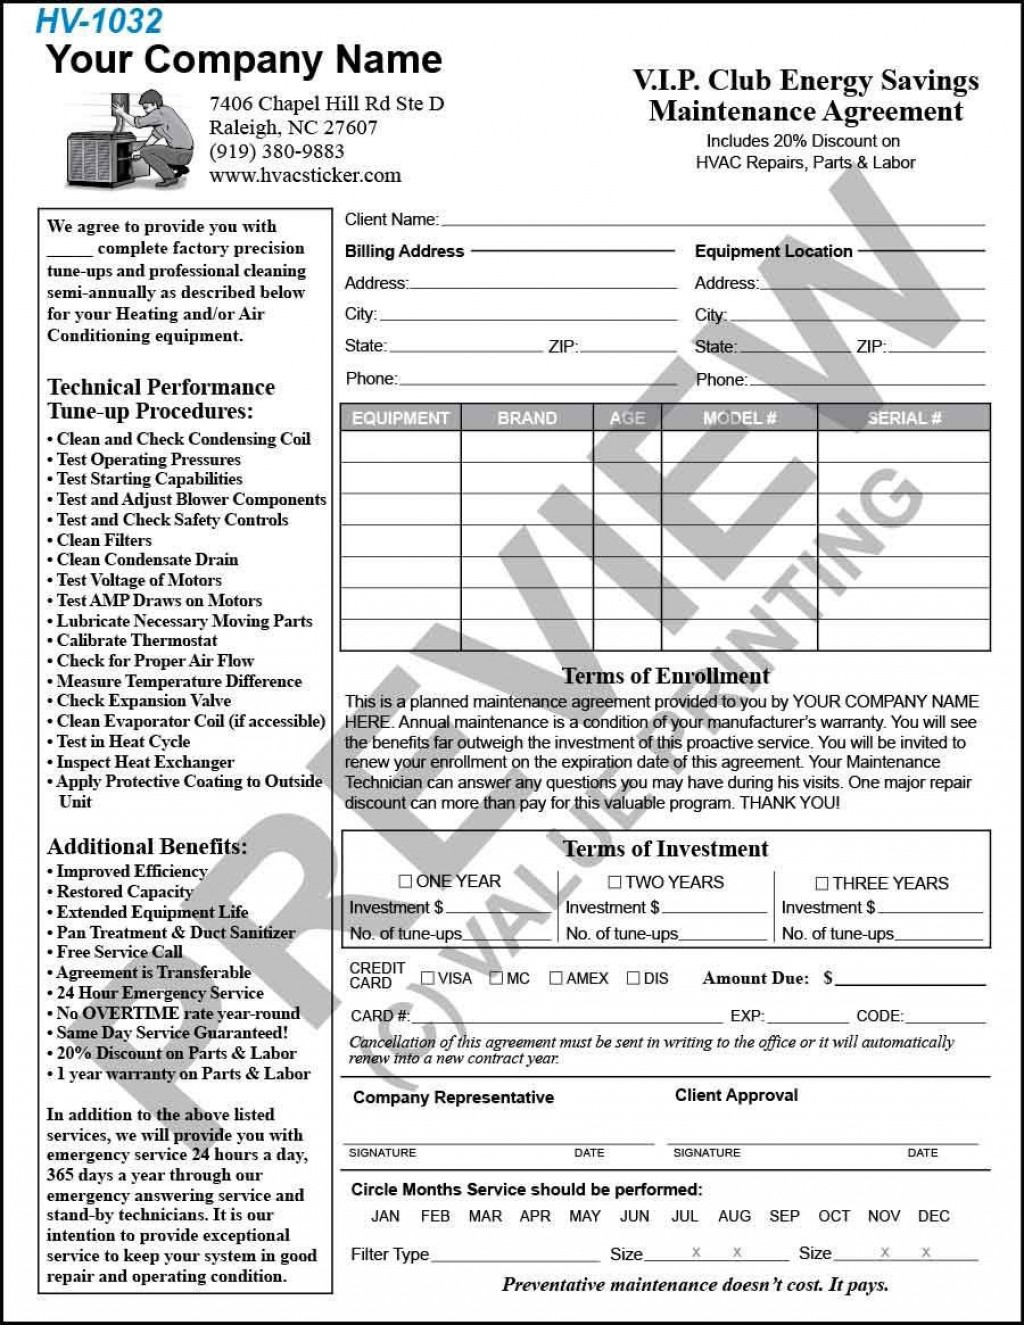 002 Rare Hvac Service Agreement Template Photo  Contract Form Maintenance PdfLarge